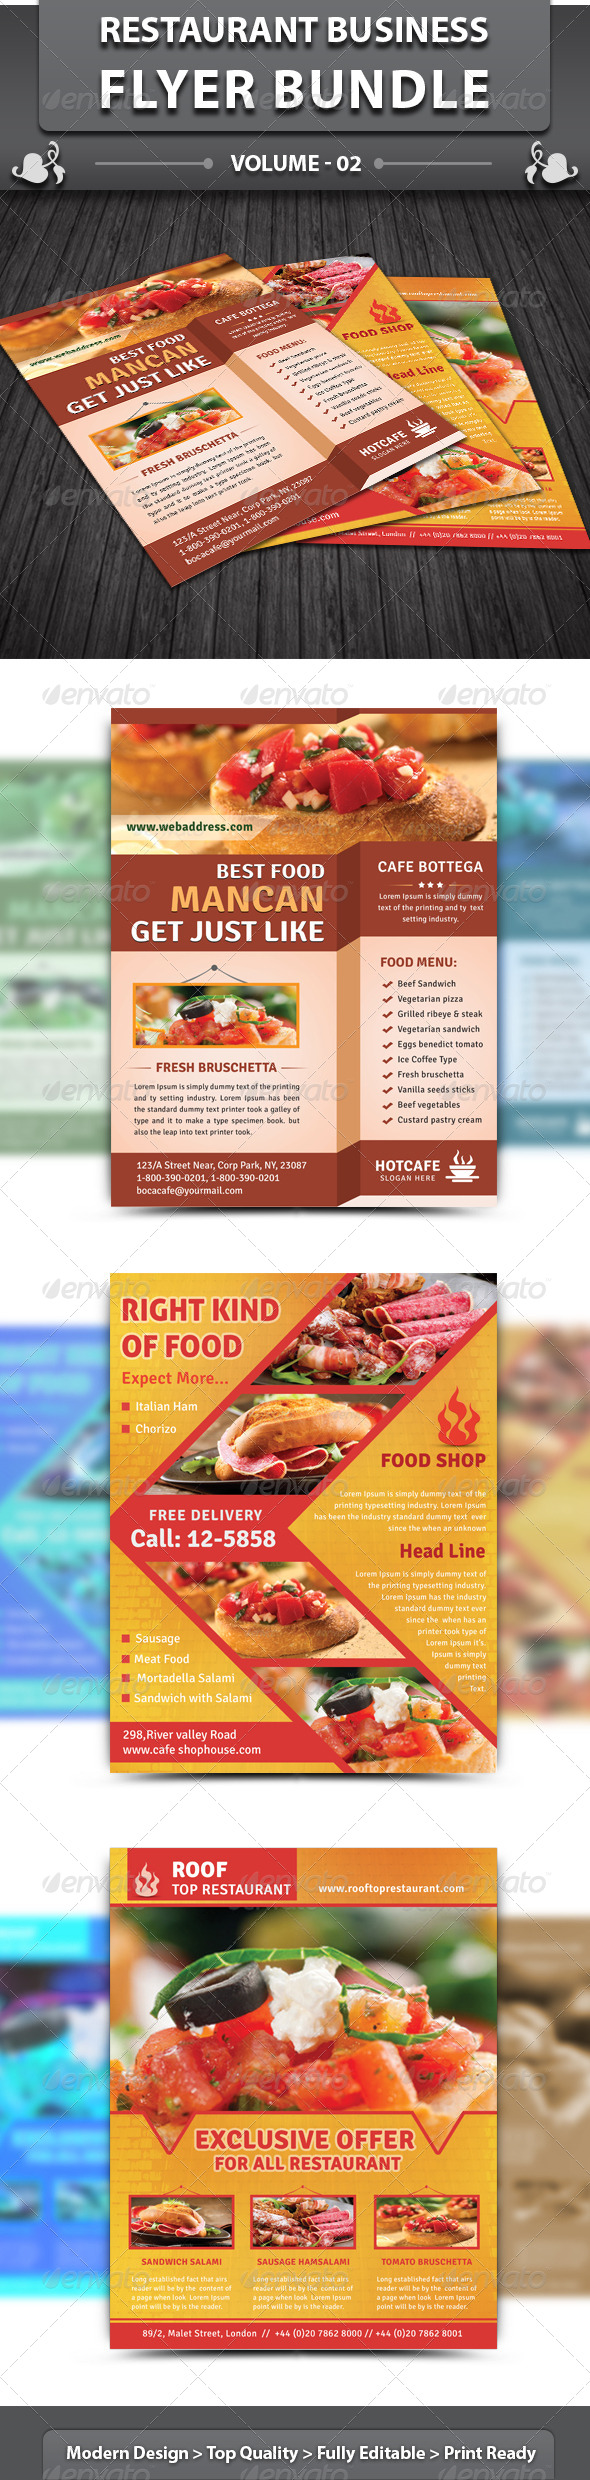 Restaurant Business Flyer | Bundle 2 - Restaurant Flyers